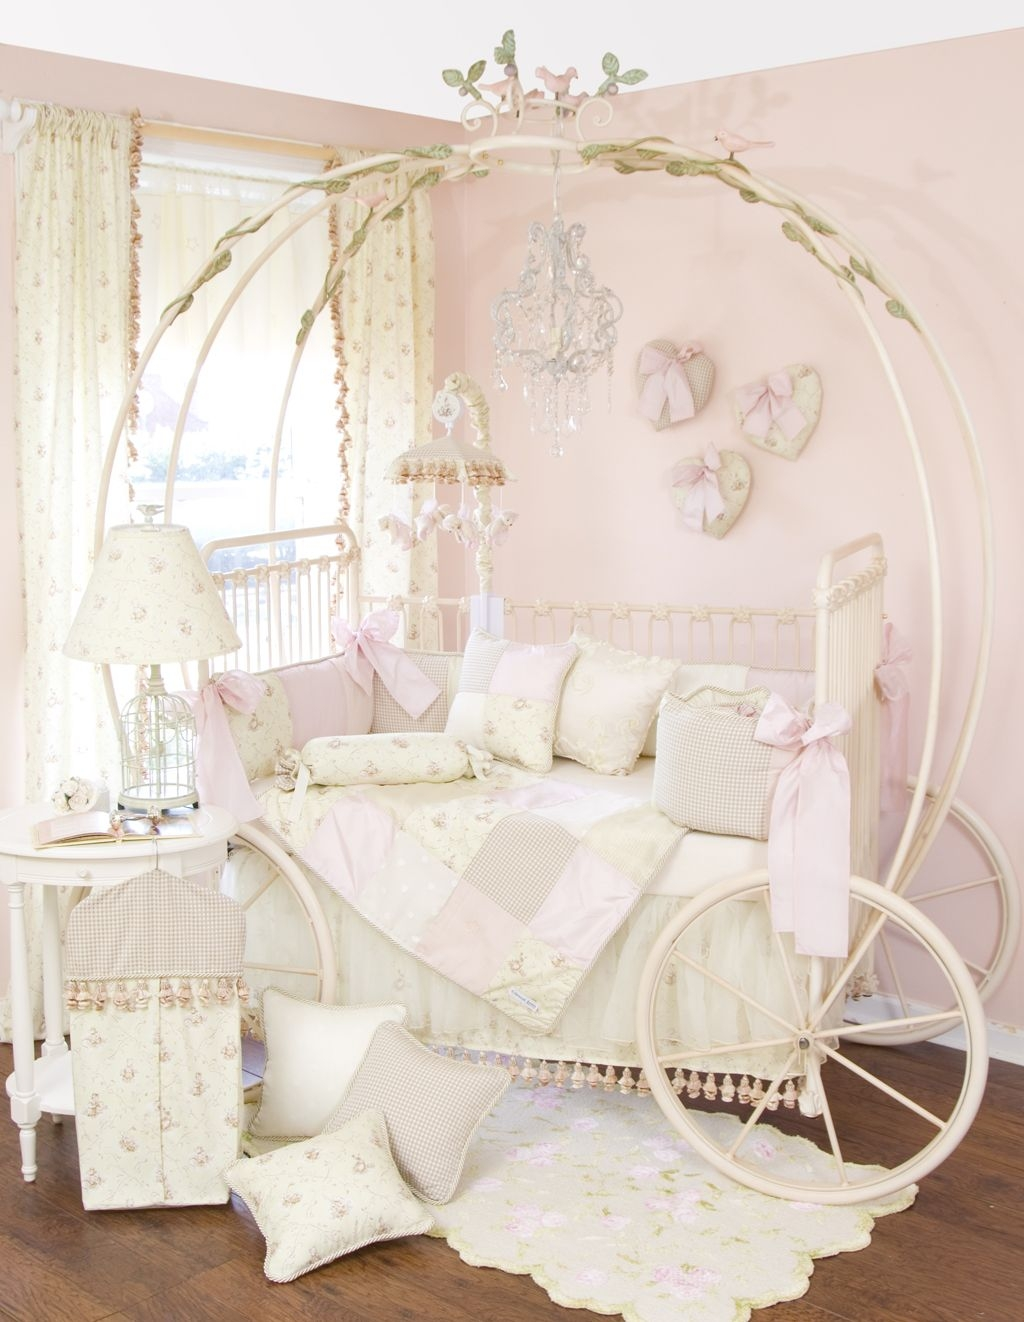 Canopy bedroom sets for girls & Girls Canopy Bedroom Set - Foter